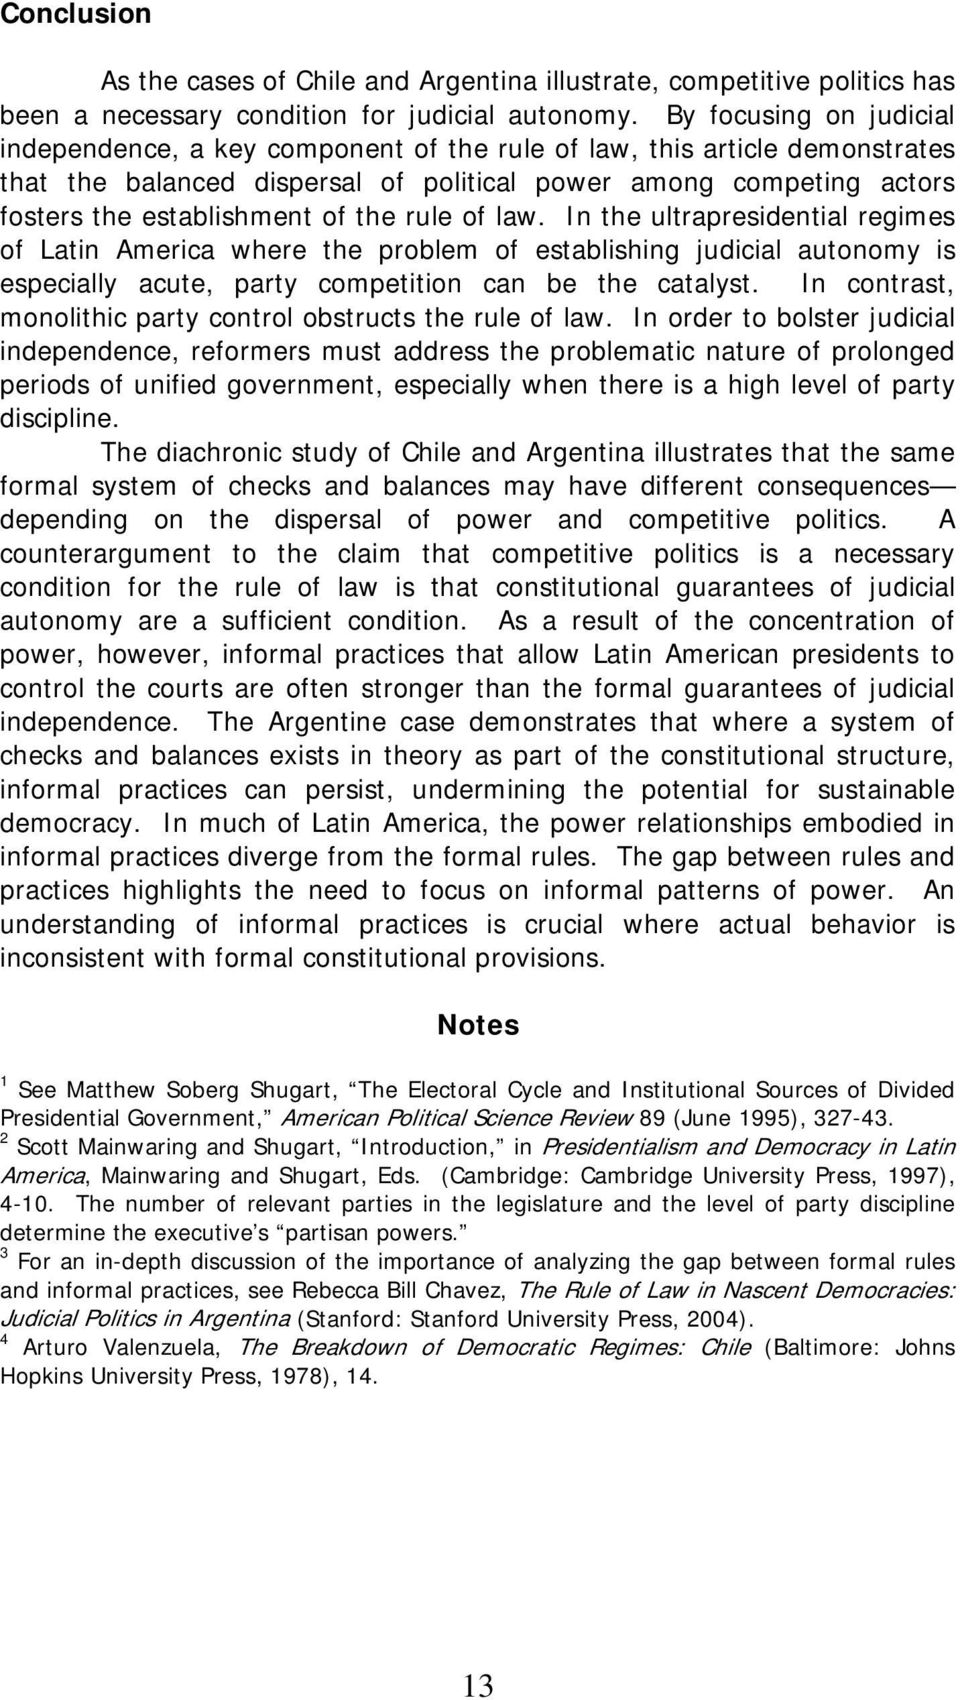 the rule of law. In the ultrapresidential regimes of Latin America where the problem of establishing judicial autonomy is especially acute, party competition can be the catalyst.